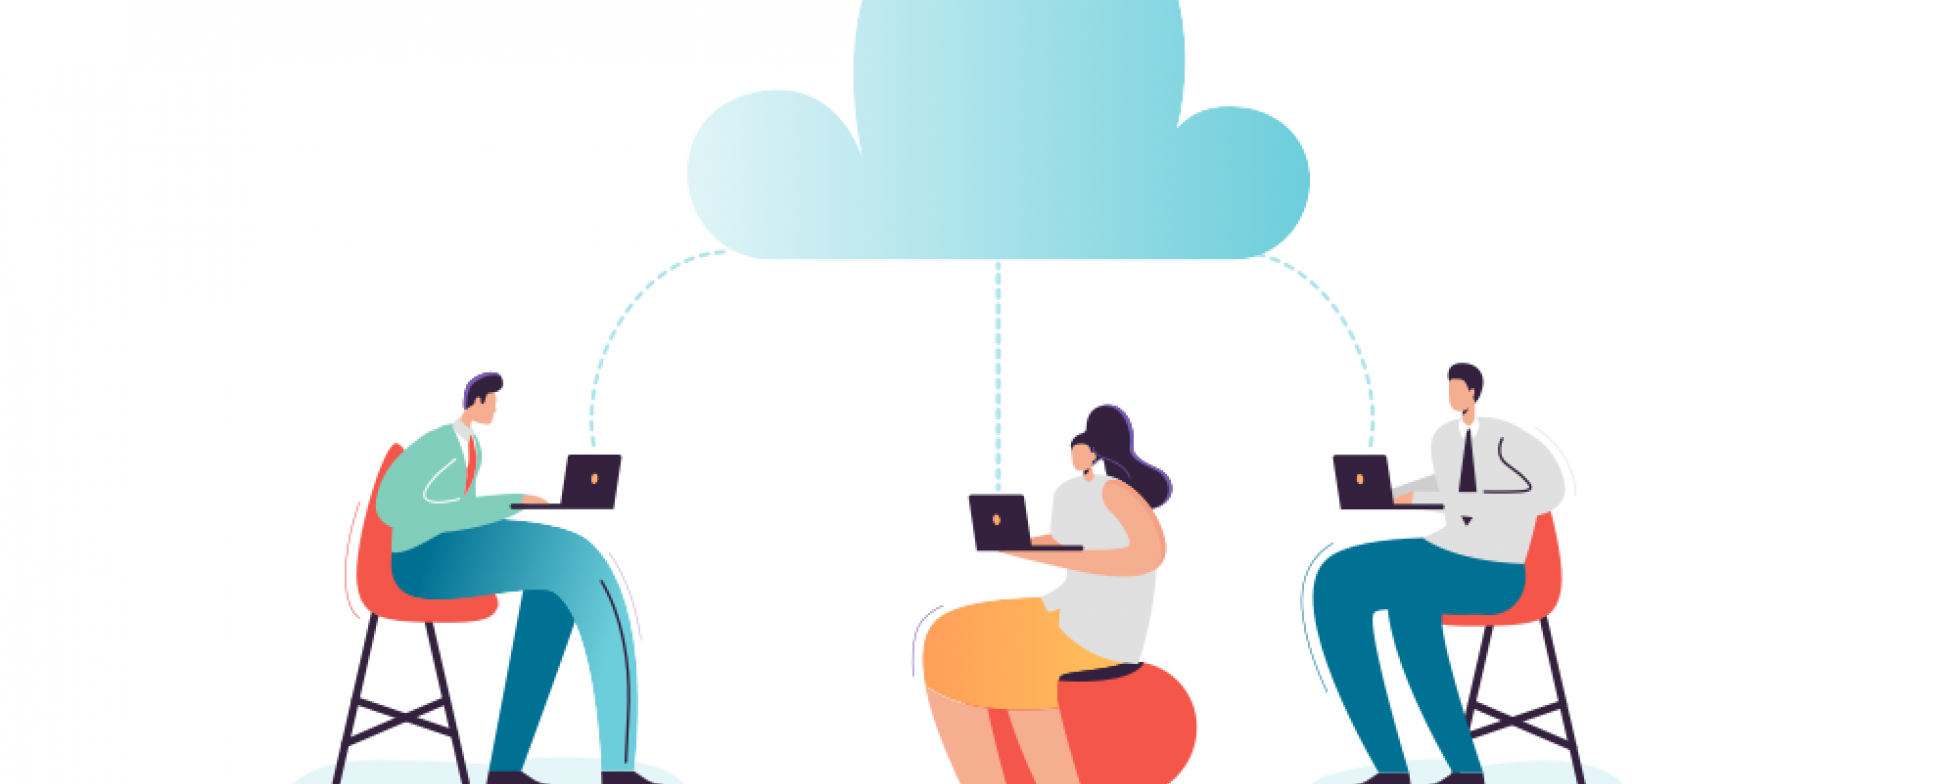 Drawing of three people with computers connected to a cloud